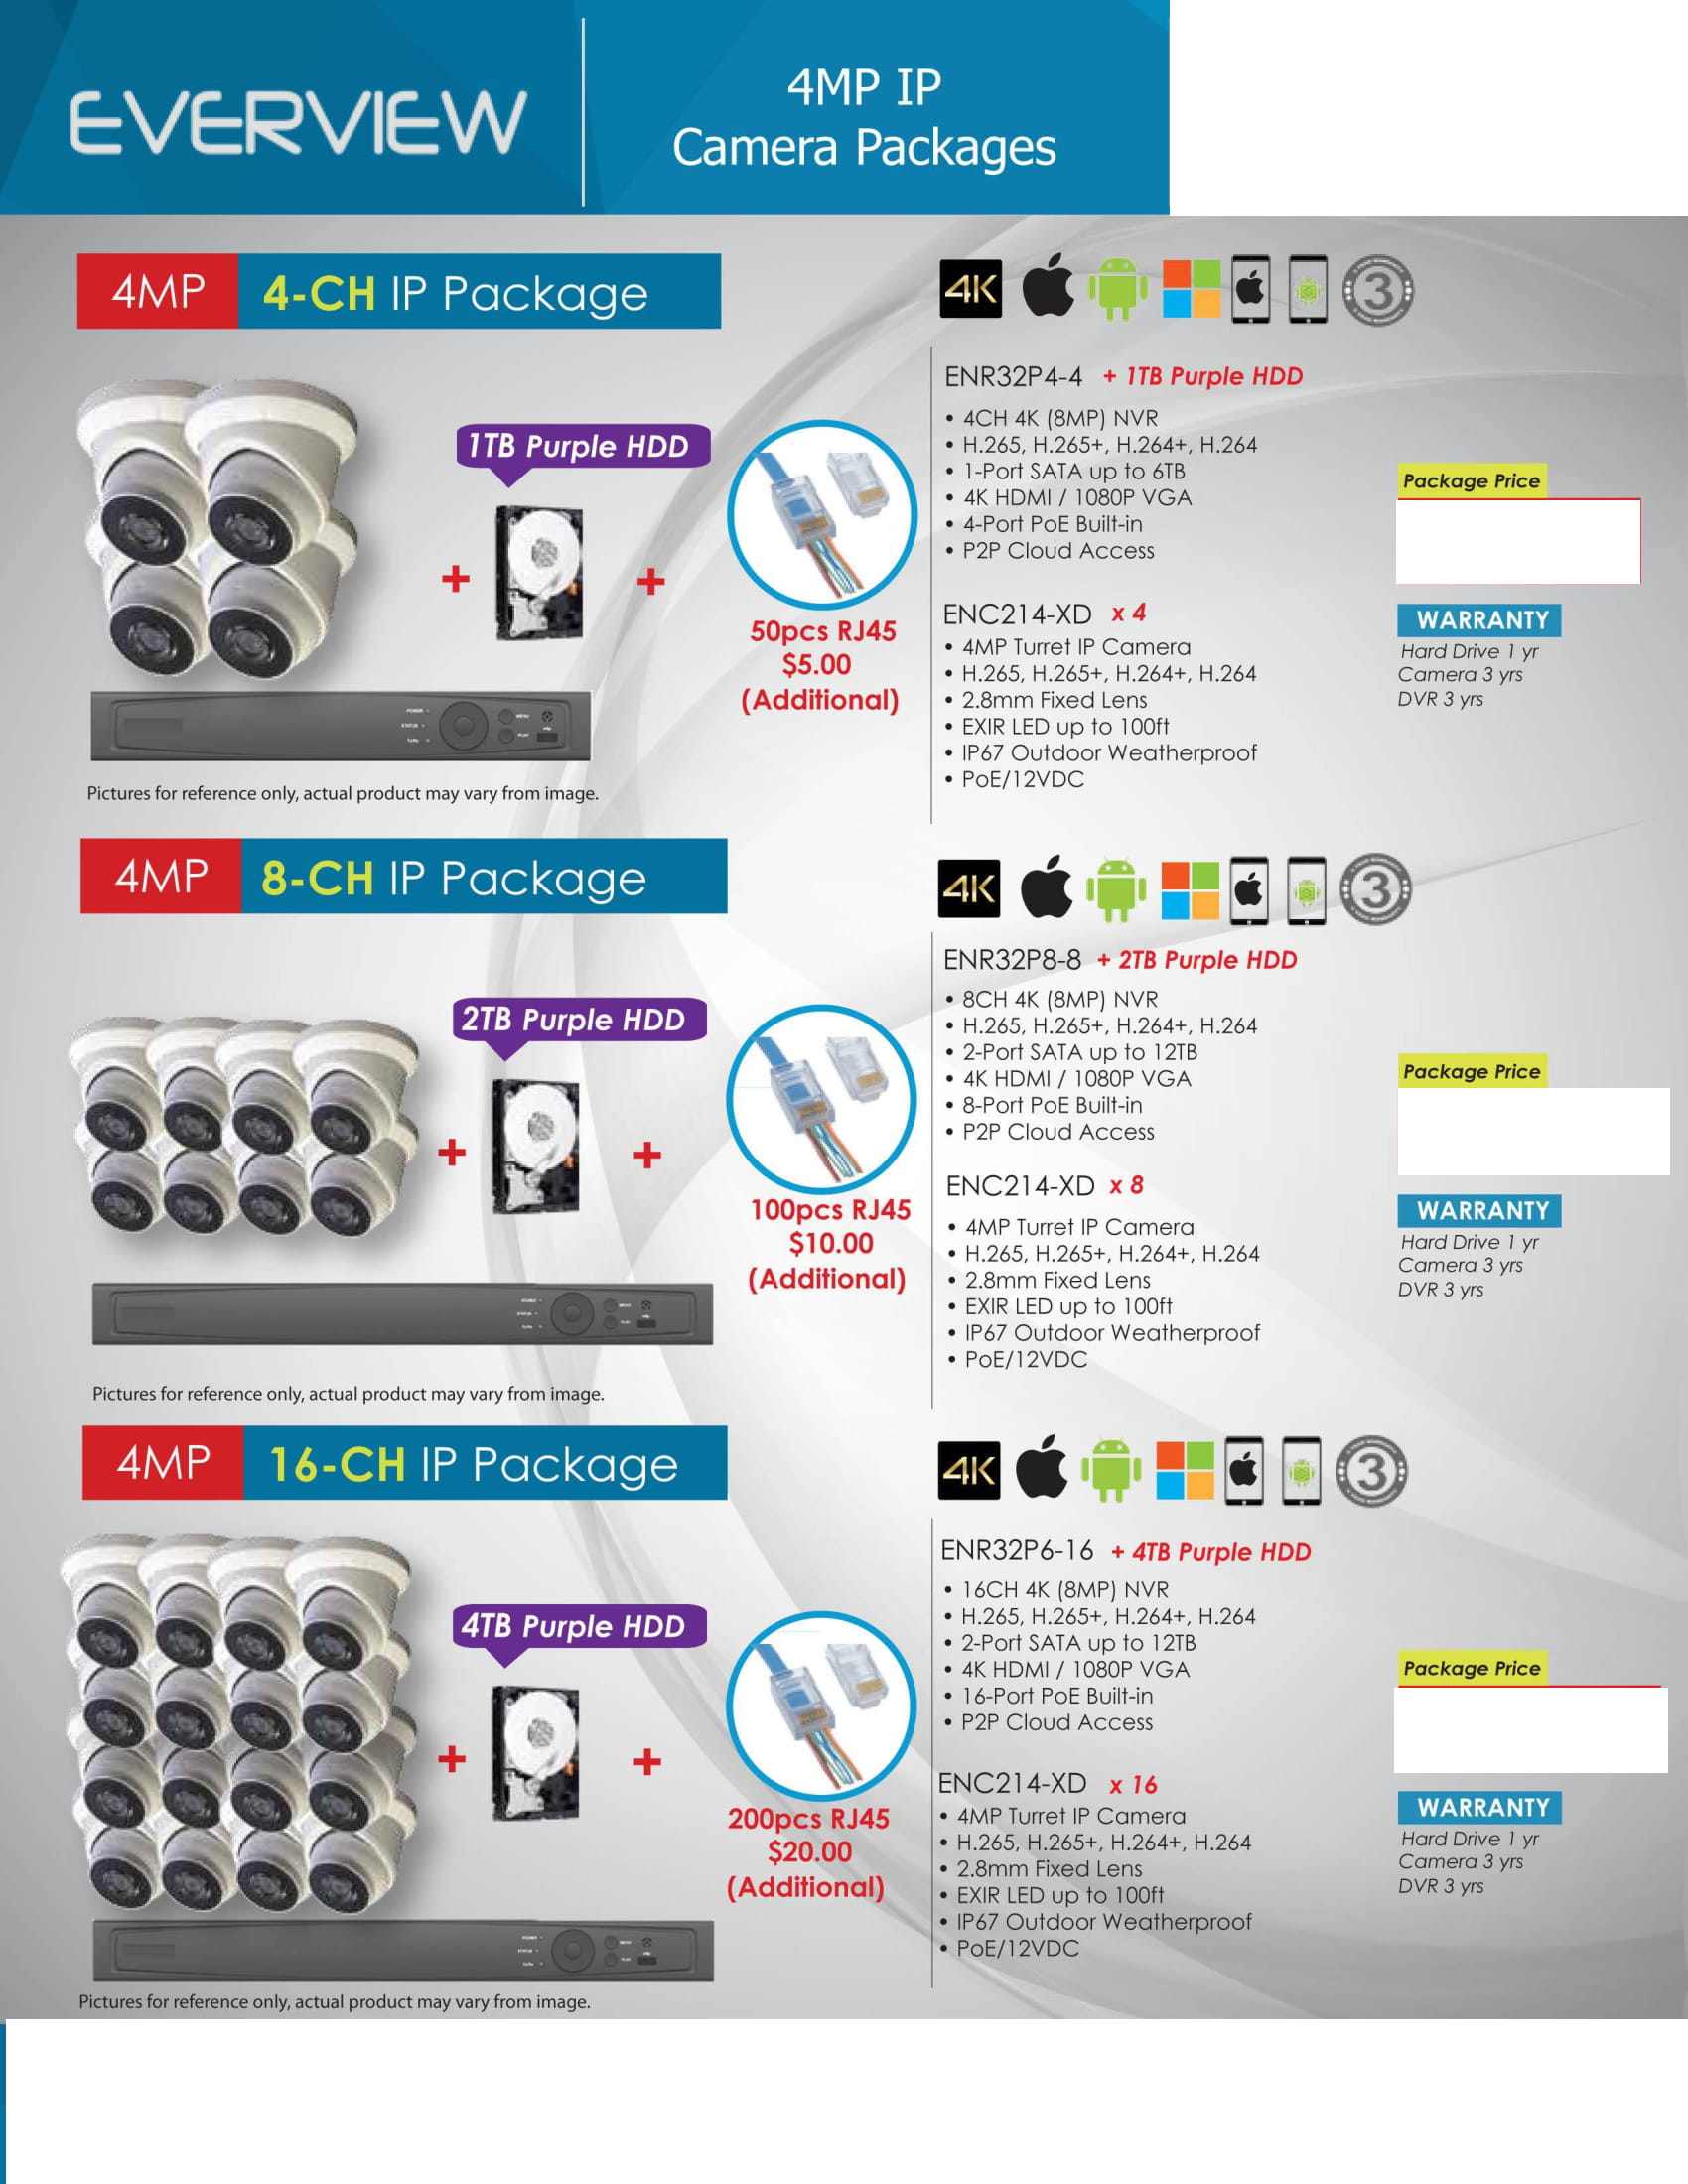 Everview_-Packages-_No-Price-6 HD Camera Packages Full Promotion Price - Compare & Shop